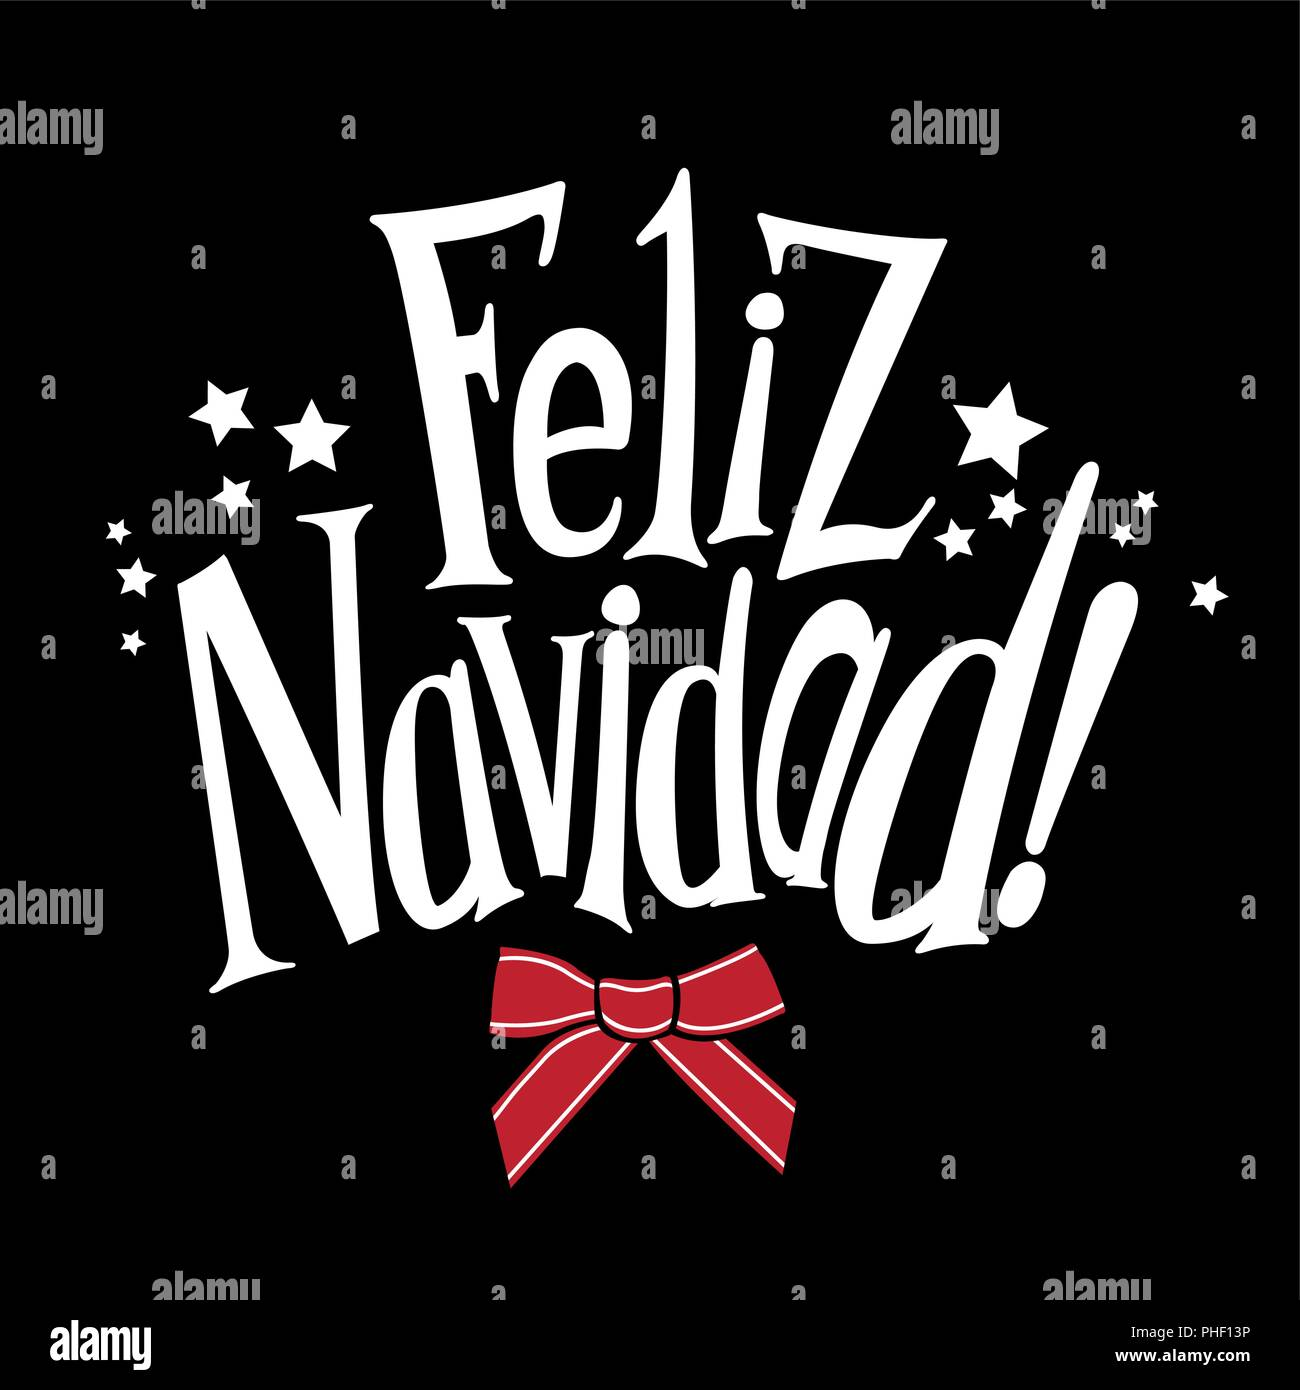 Merry Christmas In Spanish.Vector Wishes A Merry Christmas In Spanish Feliz Navidad